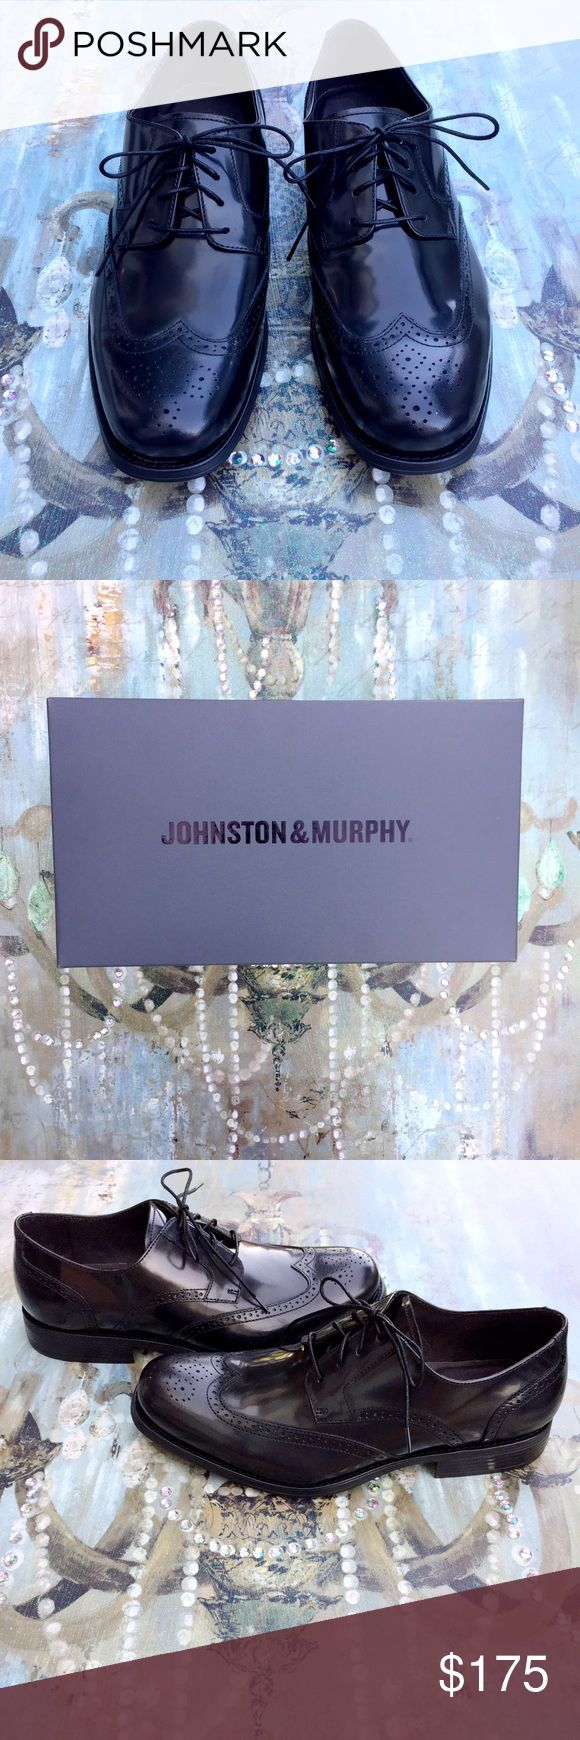 💐🐣EASTER SALE🐥💐 Johnston & Murphy Shoes These Johnston & Murphy shoes are Brand New, Never Been Worn, and come with the box and everything! They are a size 11 and are in Perfect Condition!💕 Johnston & Murphy Shoes